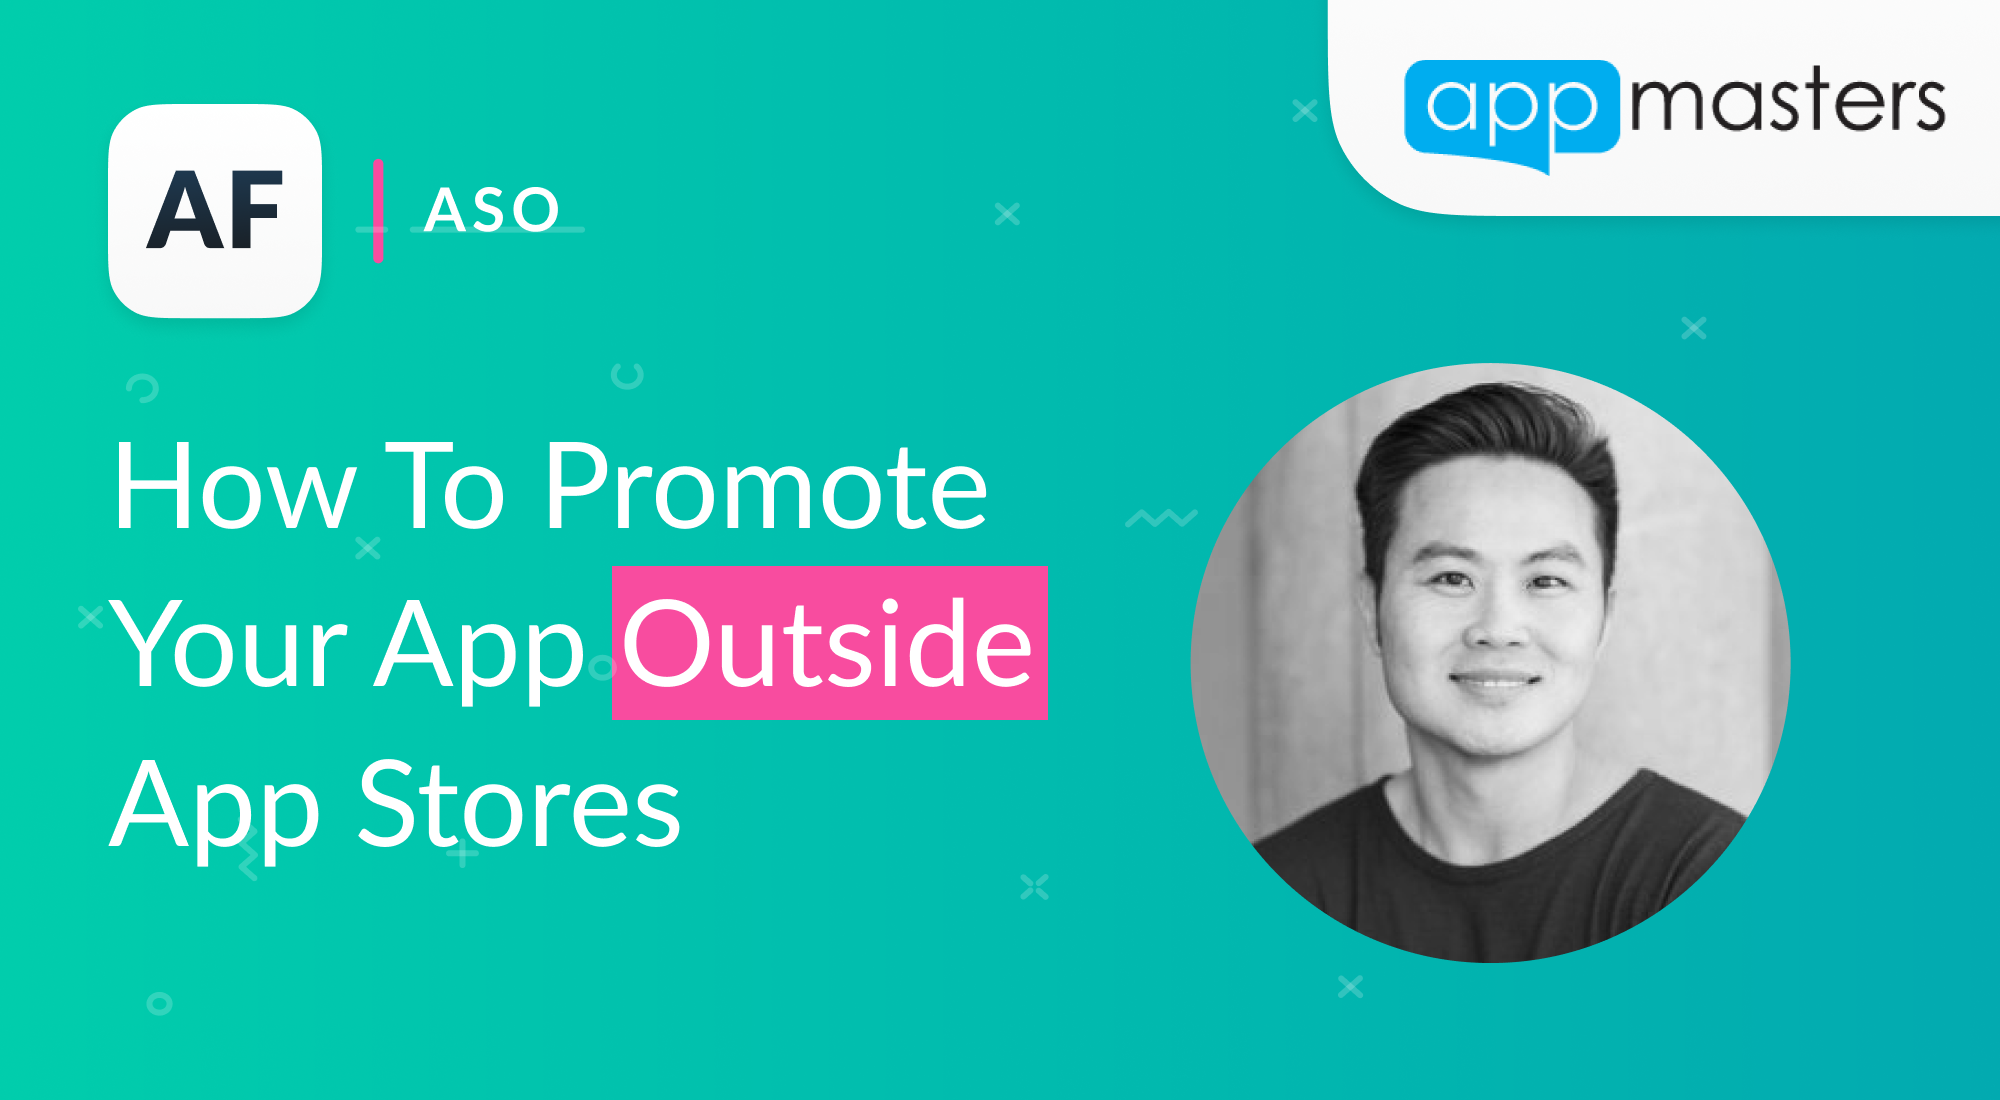 How to Promote an App Outside App Stores